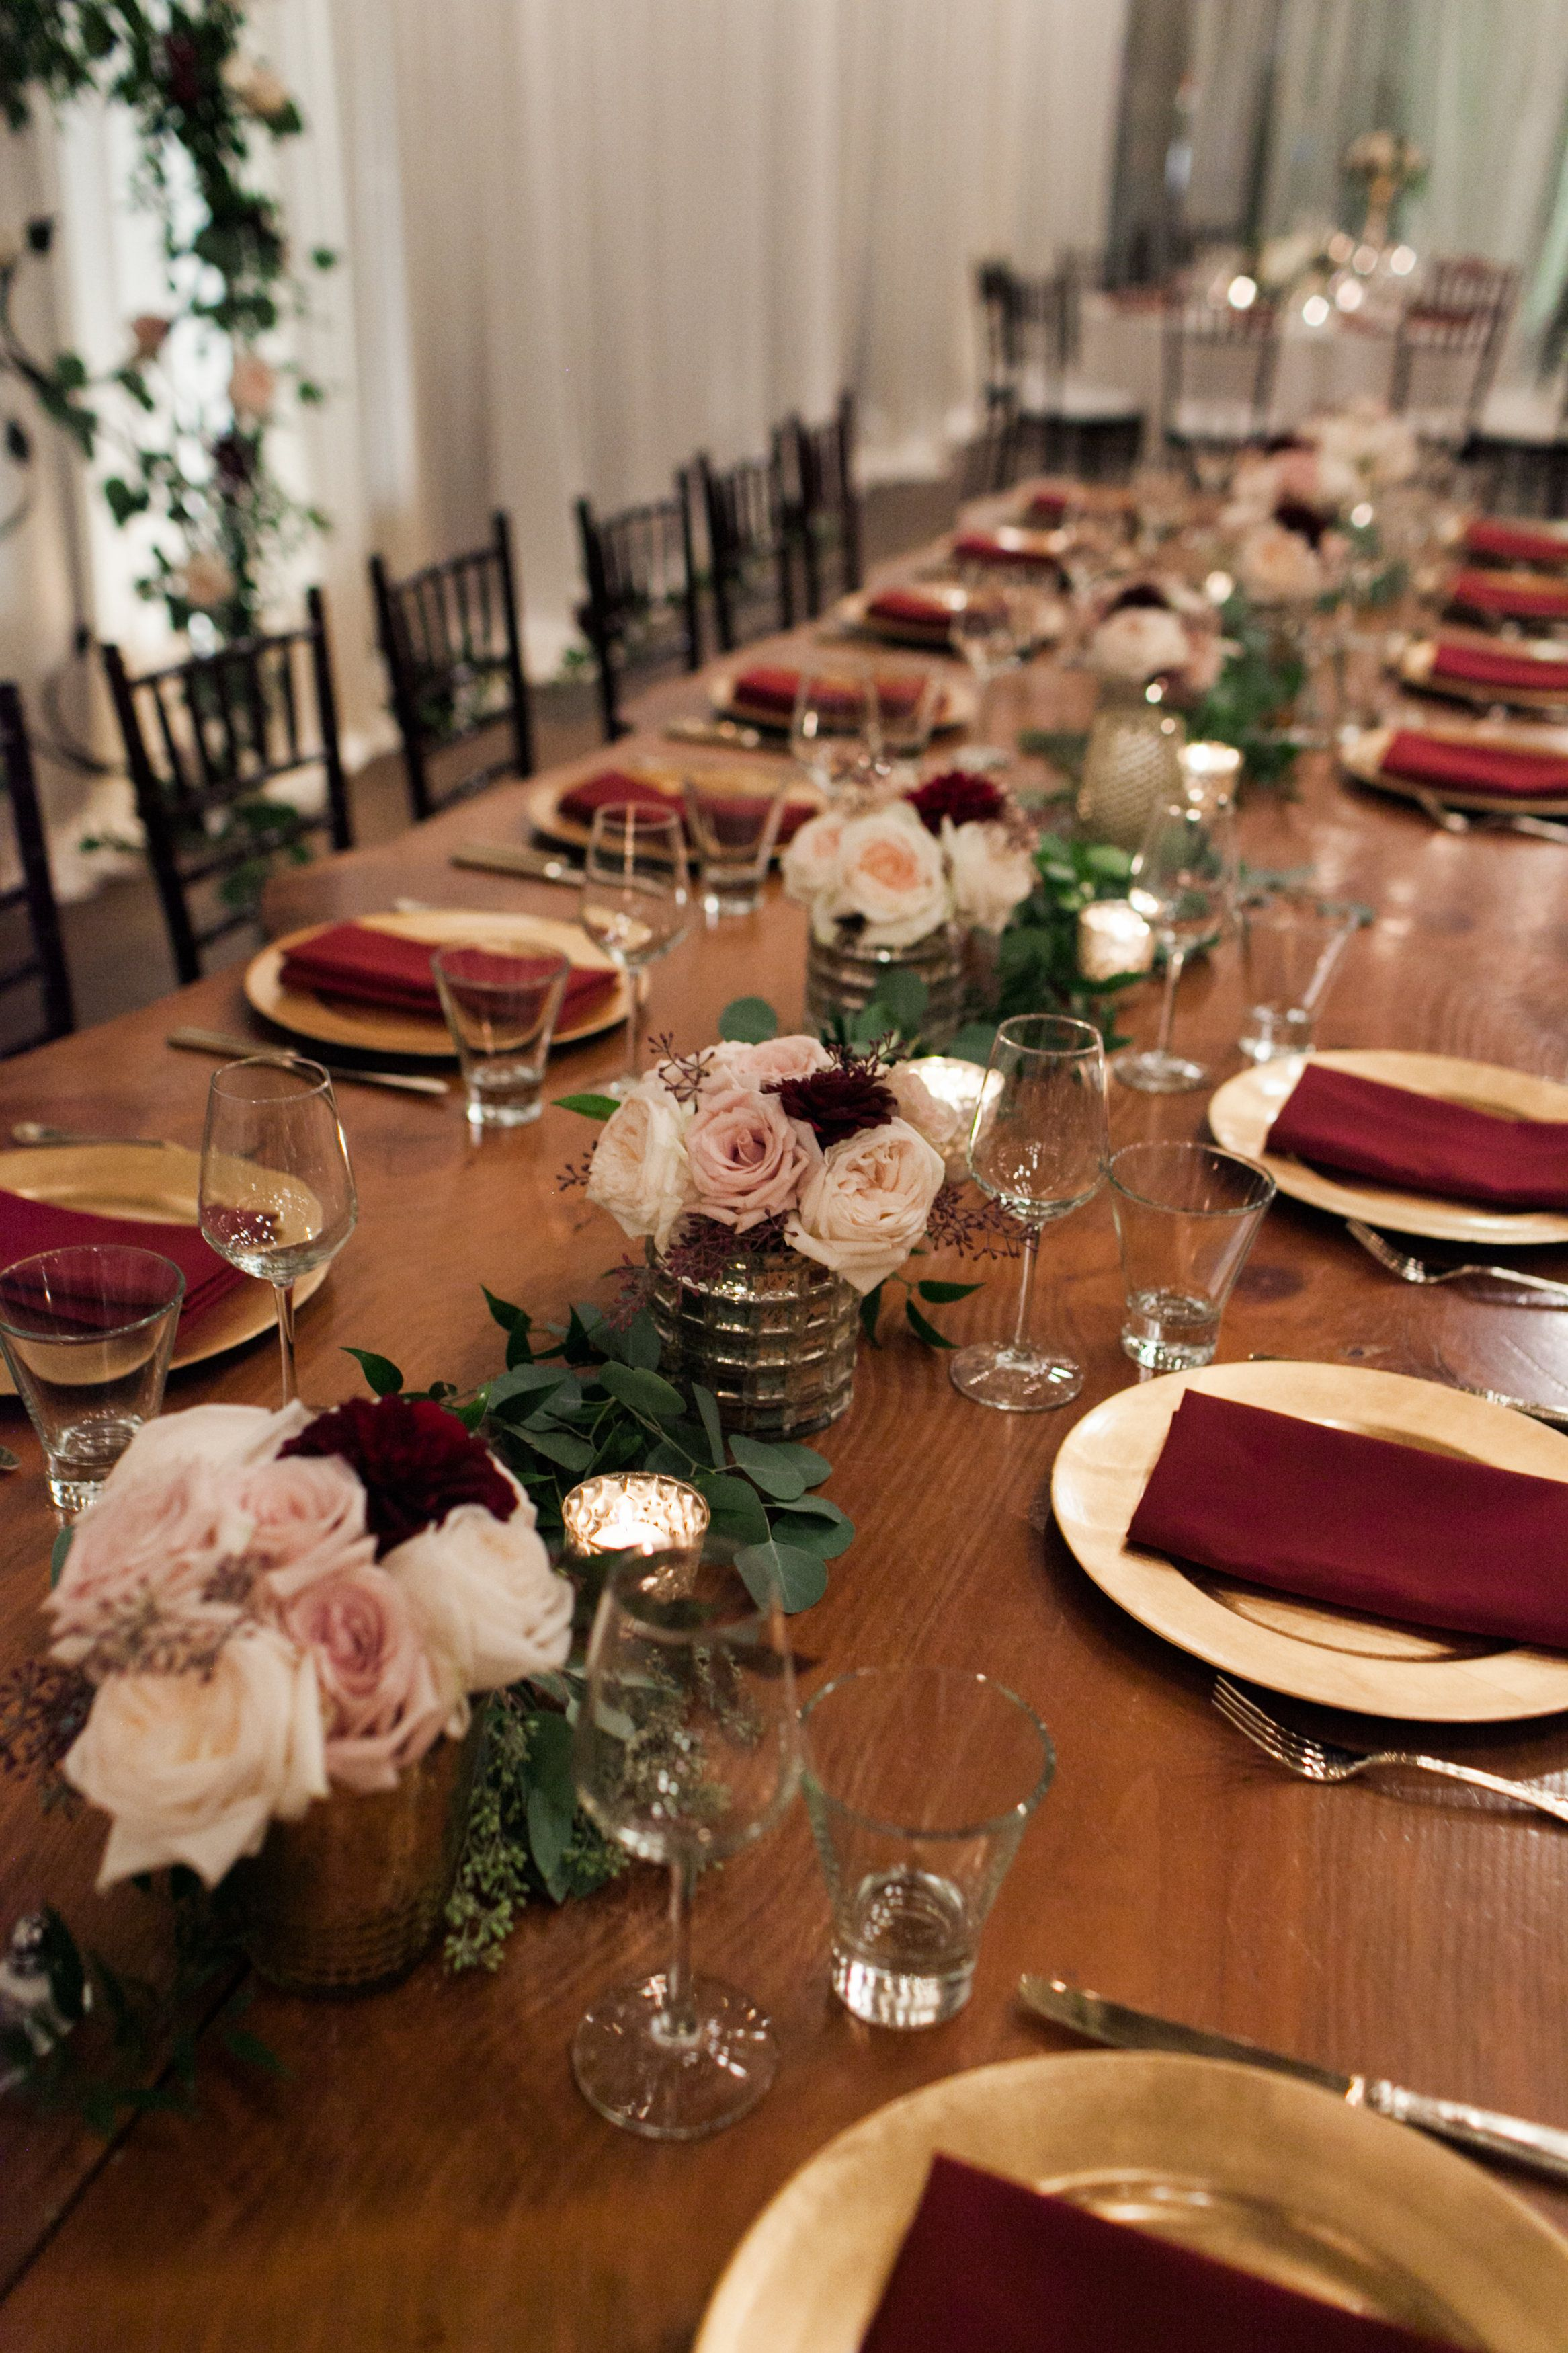 Wedding dinner decoration ideas  Sodo Park Wedding  Seattle Planning by Wedding Wise  Kate Price